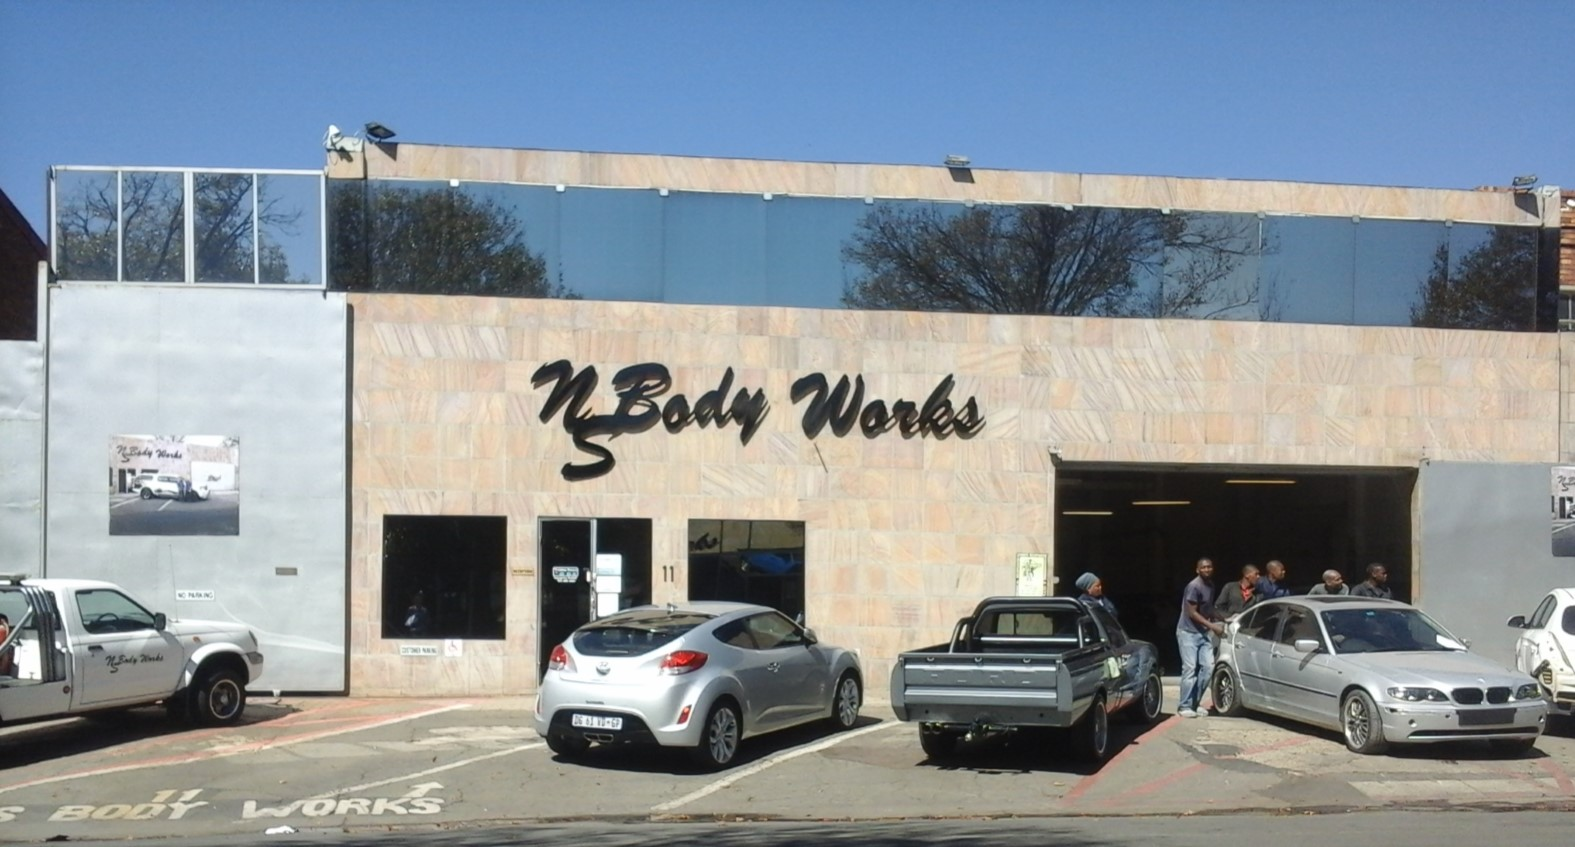 N&S Body Works